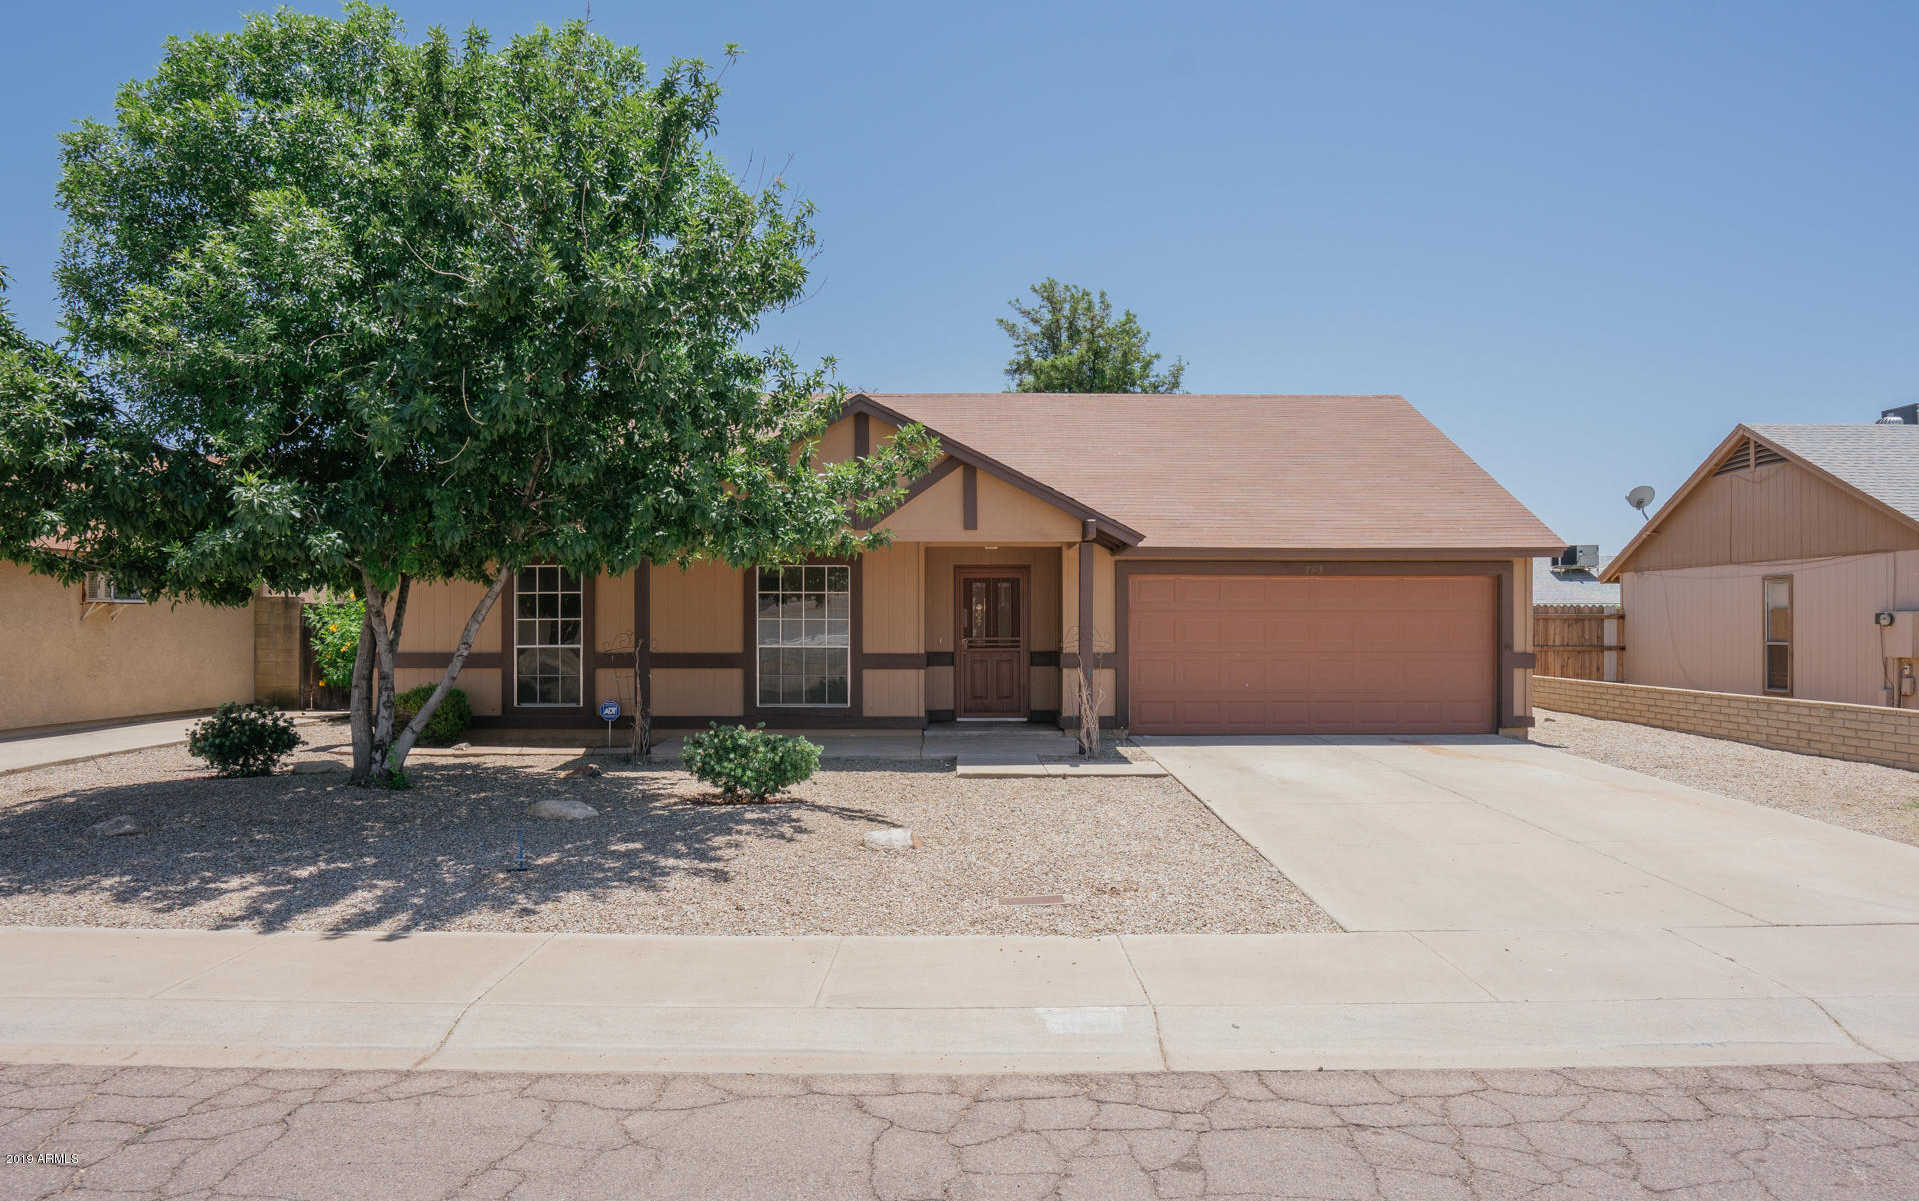 $216,000 - 3Br/2Ba - Home for Sale in La Fontana Heights Lot 1-162 Tr A, Glendale